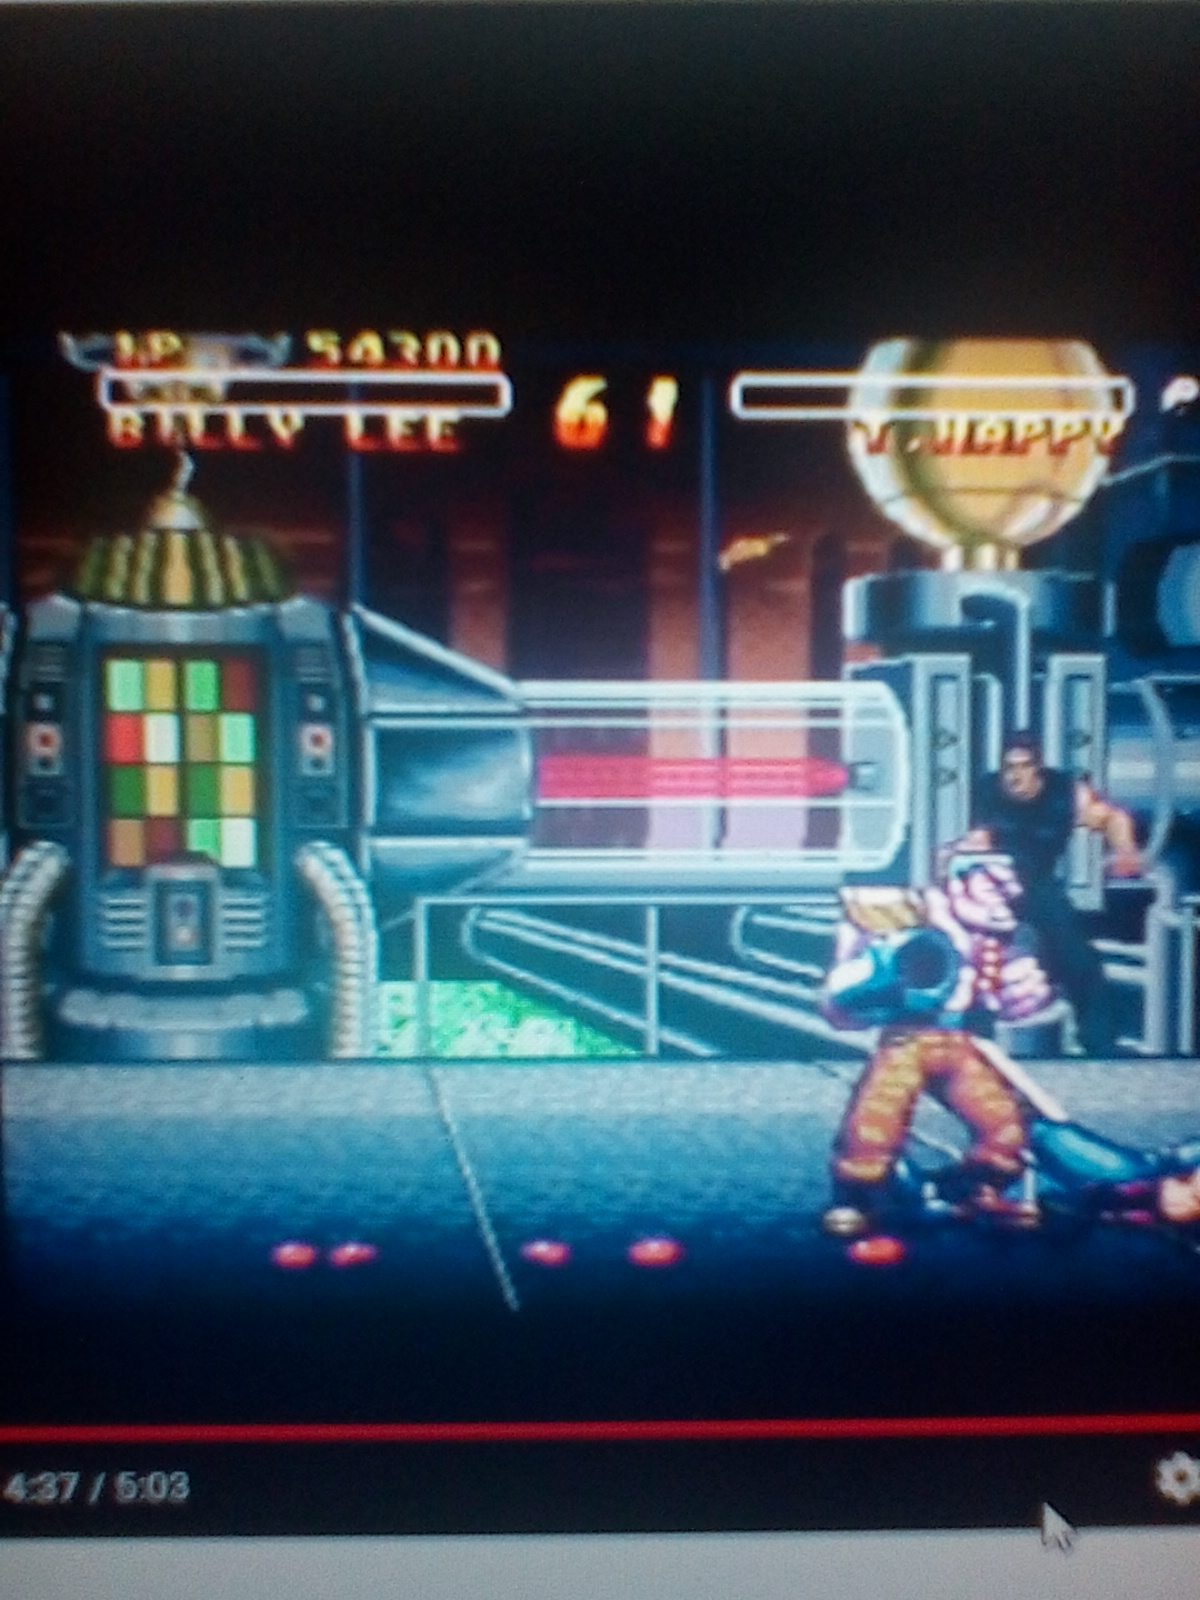 Double Dragon V The Shadow Falls [Pro] 54,300 points